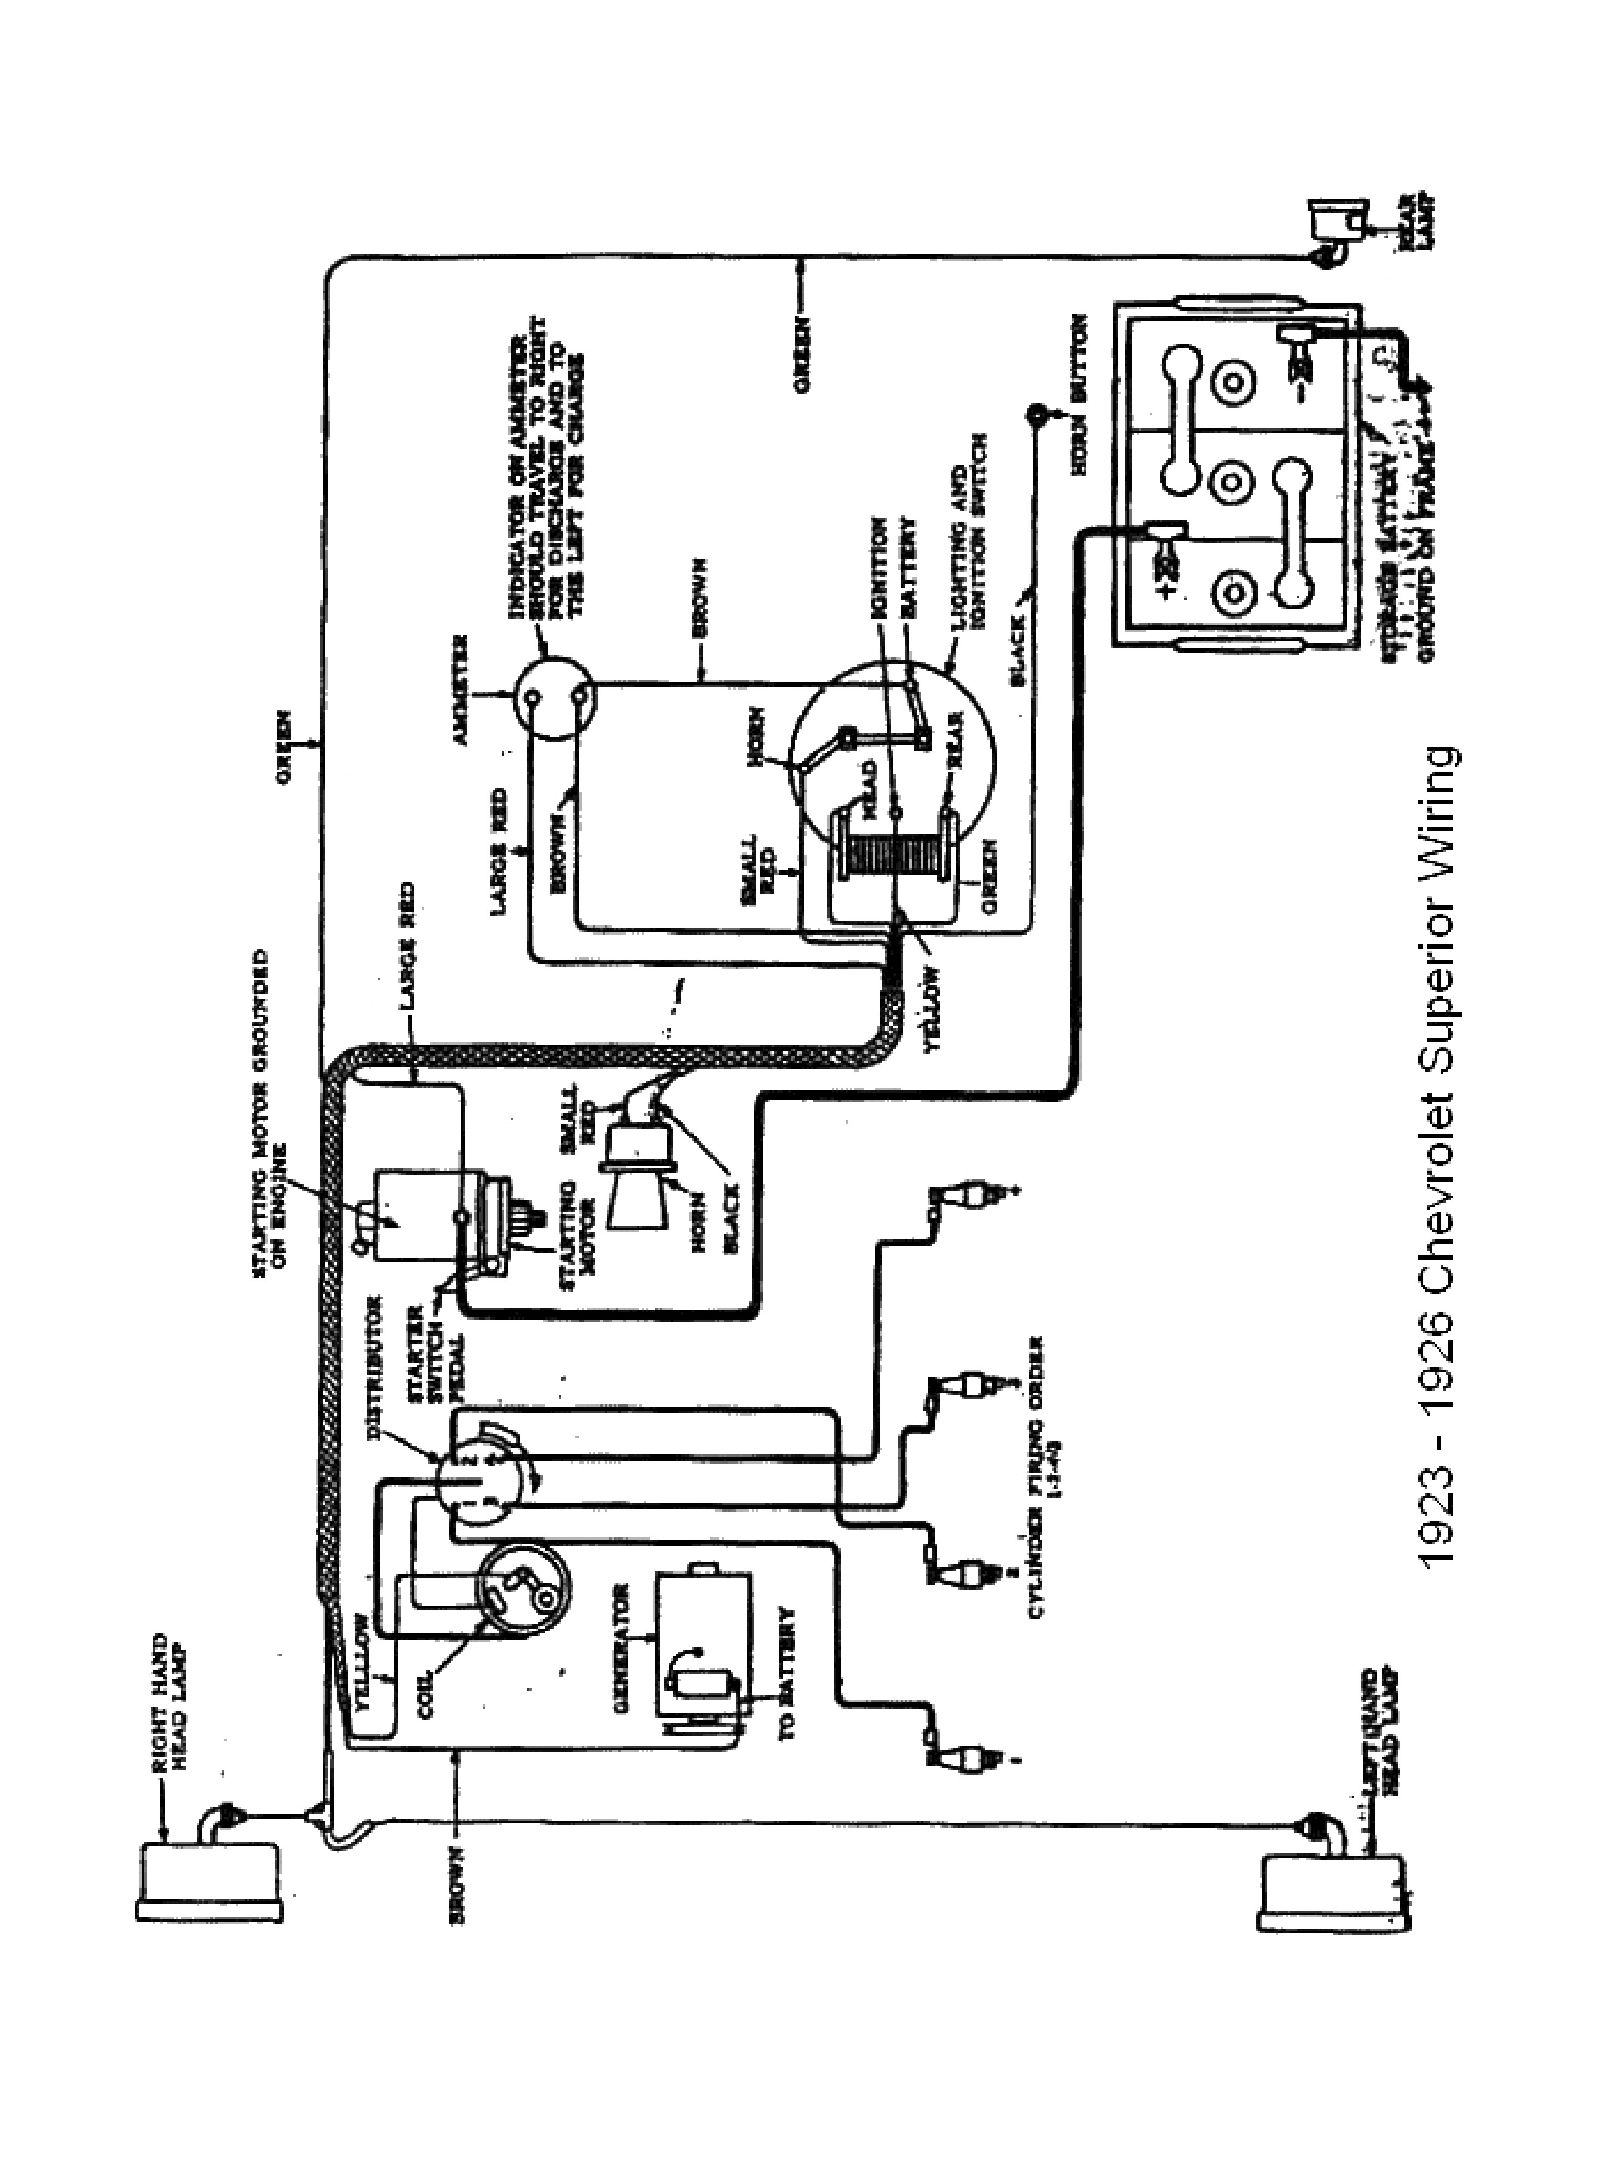 Chevy Wiring Diagrams Electrical Diagram For 1960 Chevrolet Corvair All Models 1923 Superior Model